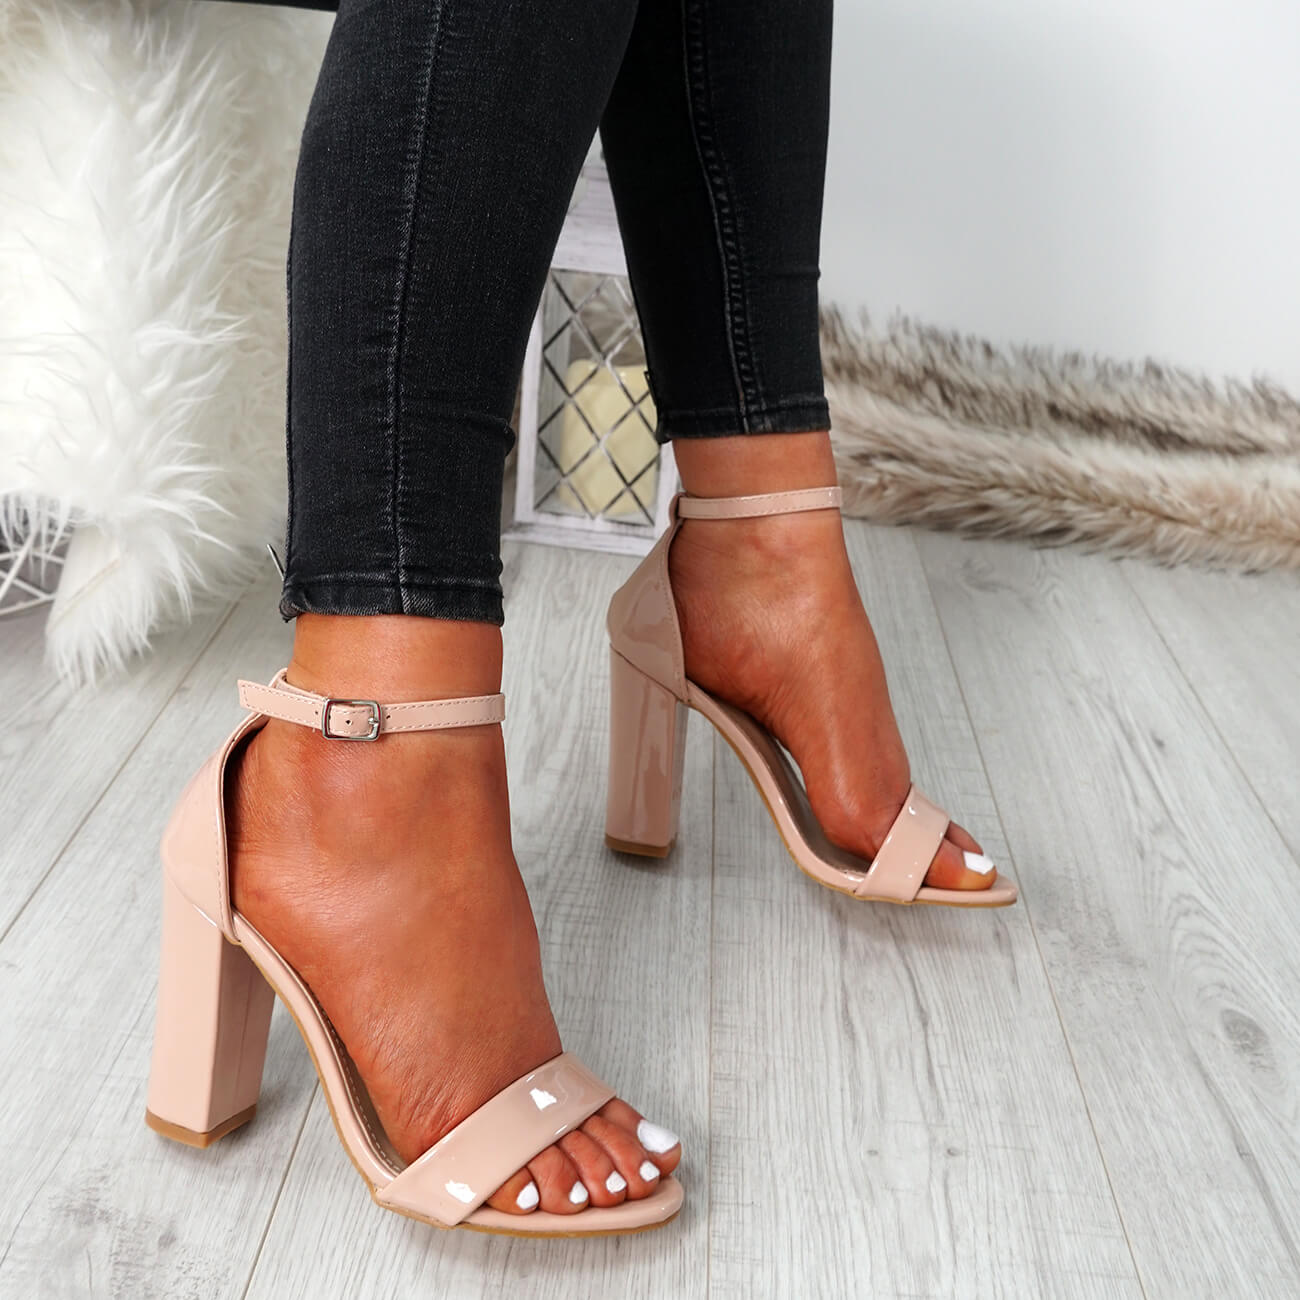 WOMENS-LADIES-ANKLE-STRAP-HIGH-BLOCK-HEEL-SANDALS-PEEP-TOE-PARTY-SHOES-SIZE thumbnail 19